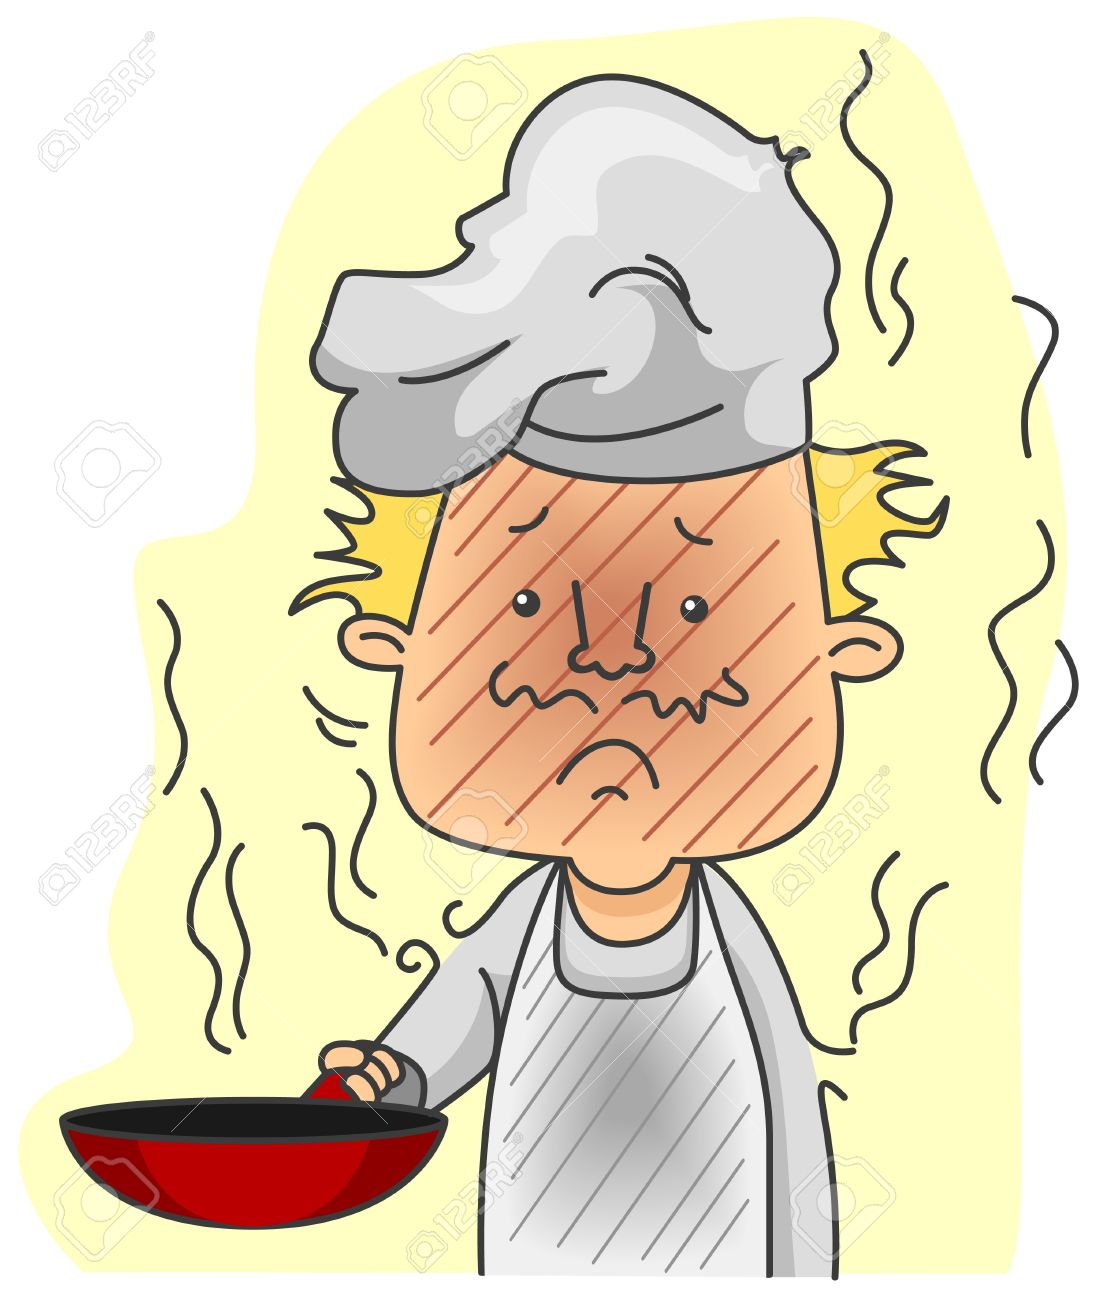 Burned food clipart.